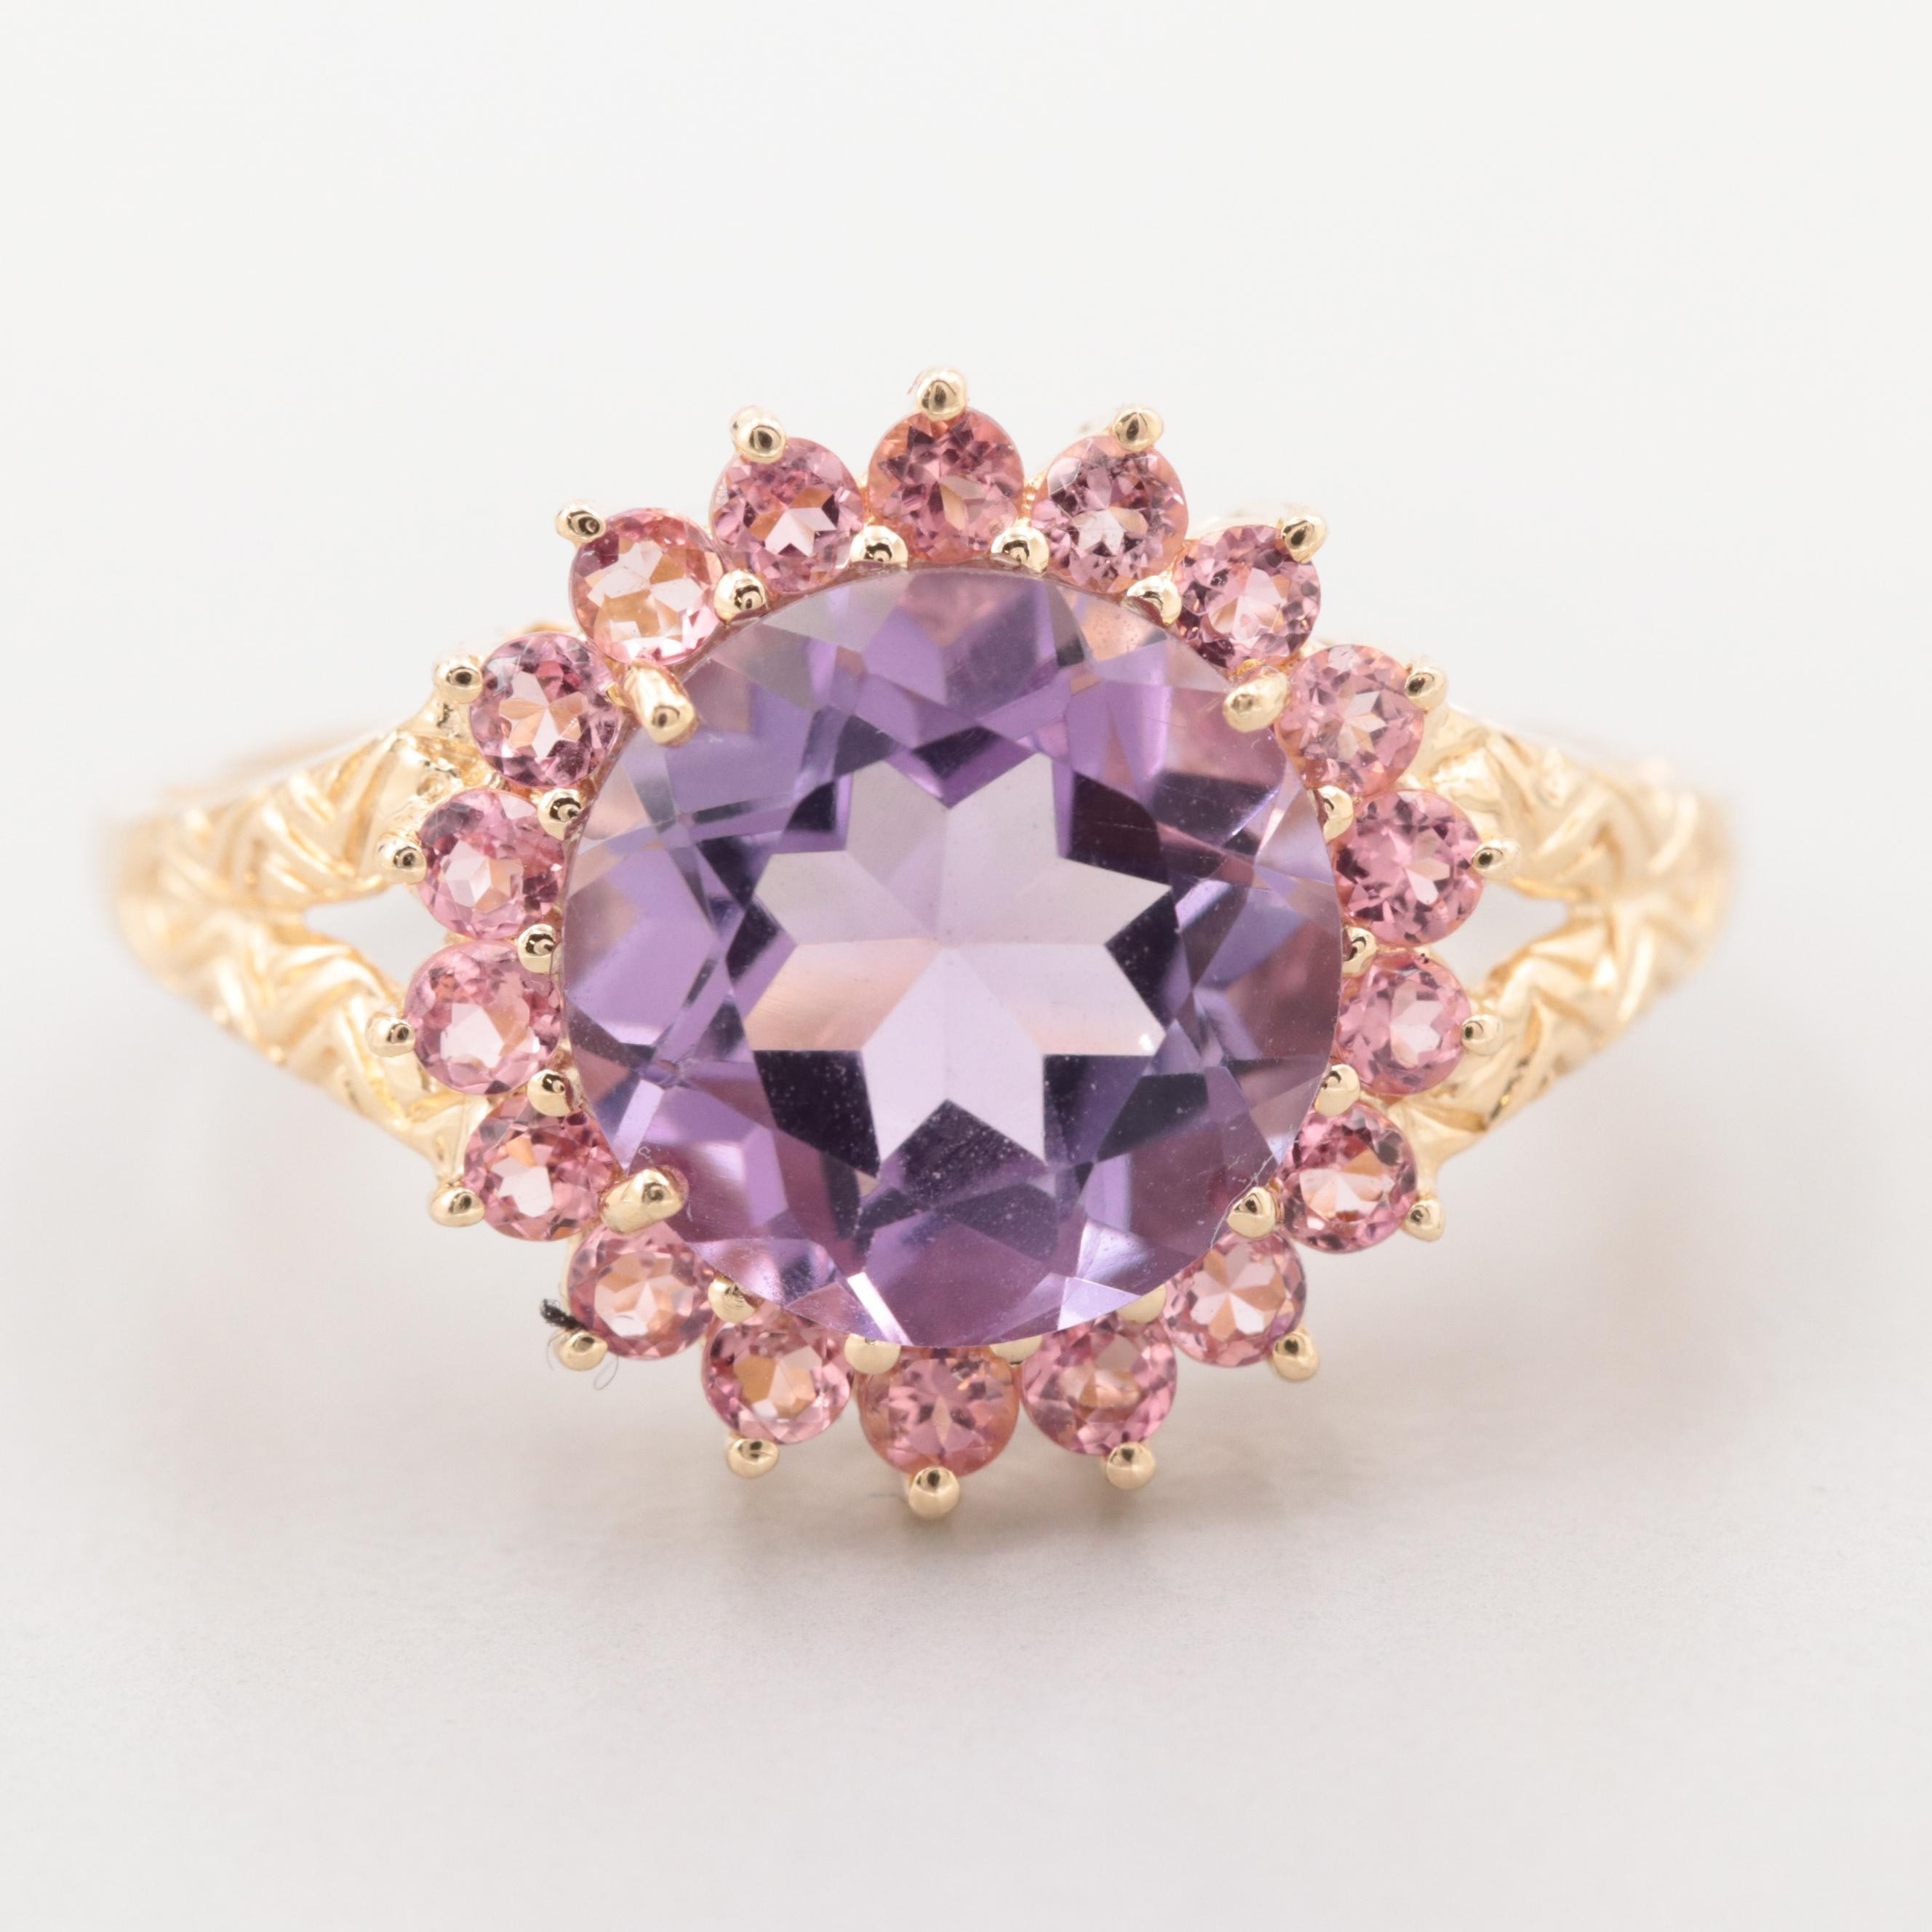 14K Yellow Gold Amethyst Ring with Tourmaline Halo